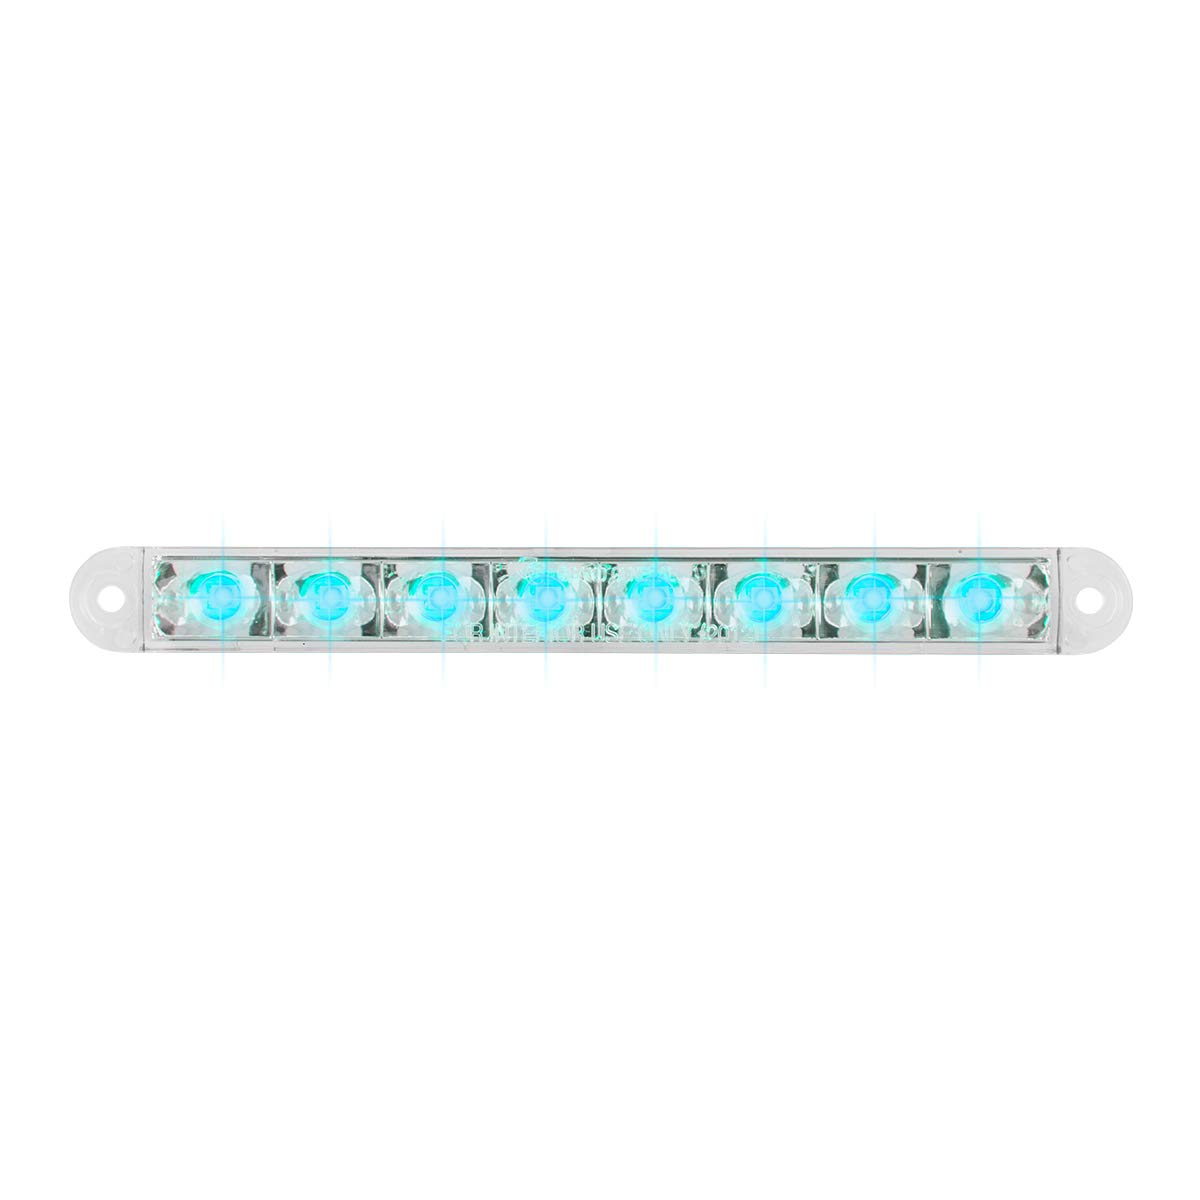 6-1//2 Pearl Blue//Clear 8LED, 3 Wires GG Grand General 74766 Light Bar